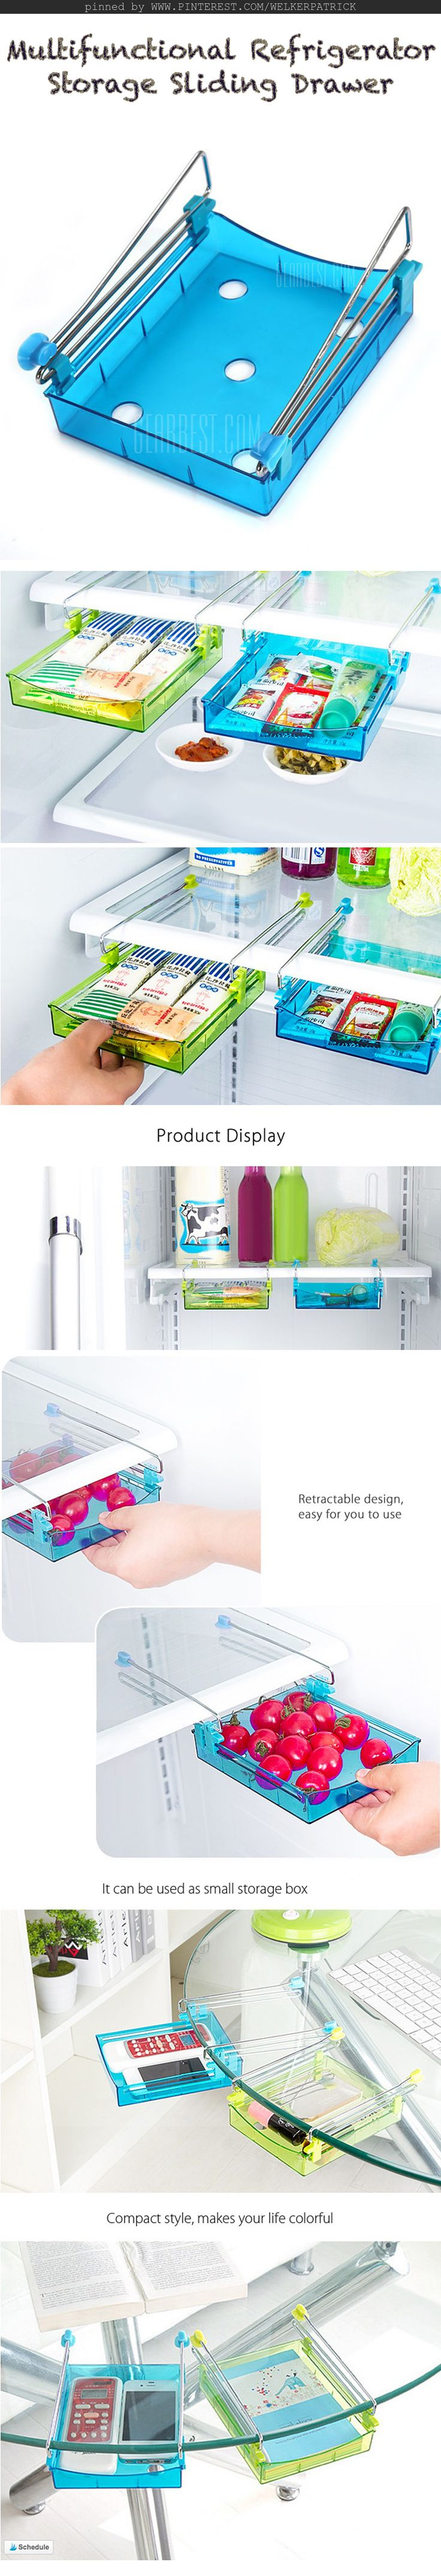 This multifunctional refrigerator storage box can meet your different requirements • More space saving, it can be put under the table and hold some gadgets • It can keep your home and refrigerator neat and clean • Retractable design, easy for you to use  • Stainless steel rack, resistant to corrosion • Drain design, antimicrobial and easy to clean • Available color: green and blue #organizer #fridge #office